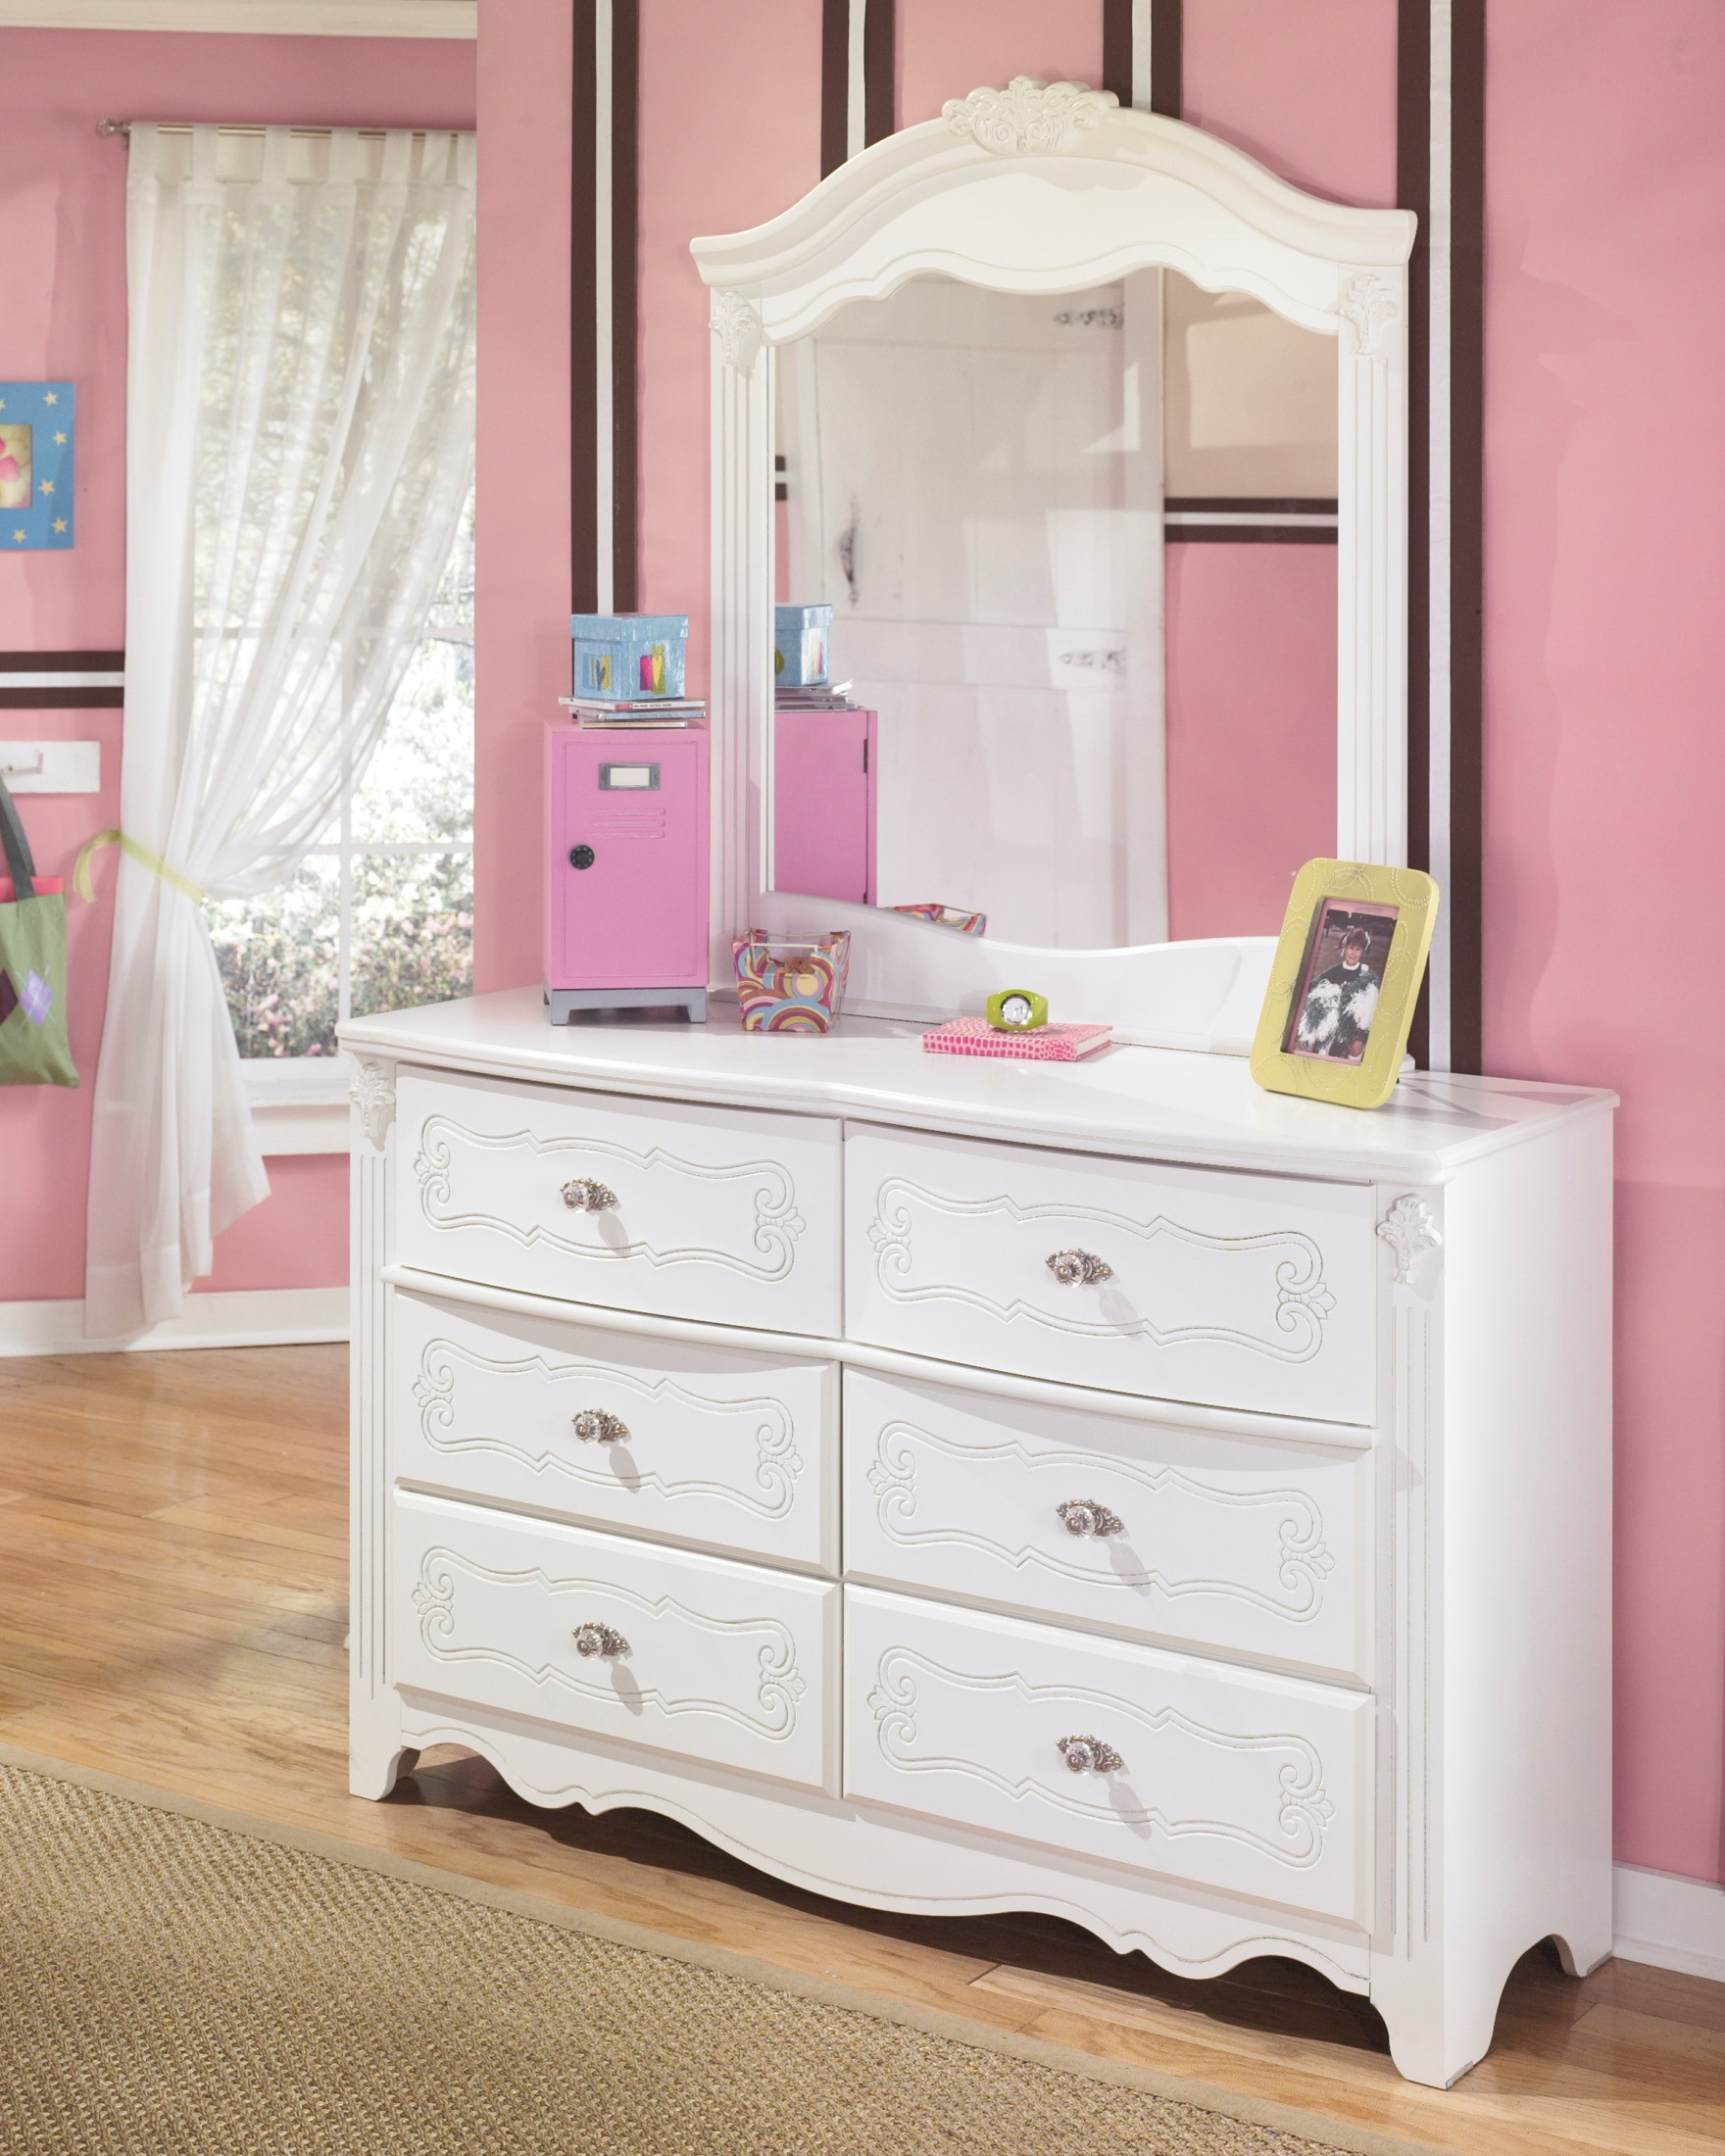 b signature number by northeast ashley dresser furniture bedroom mirror design with catalina dressers products item